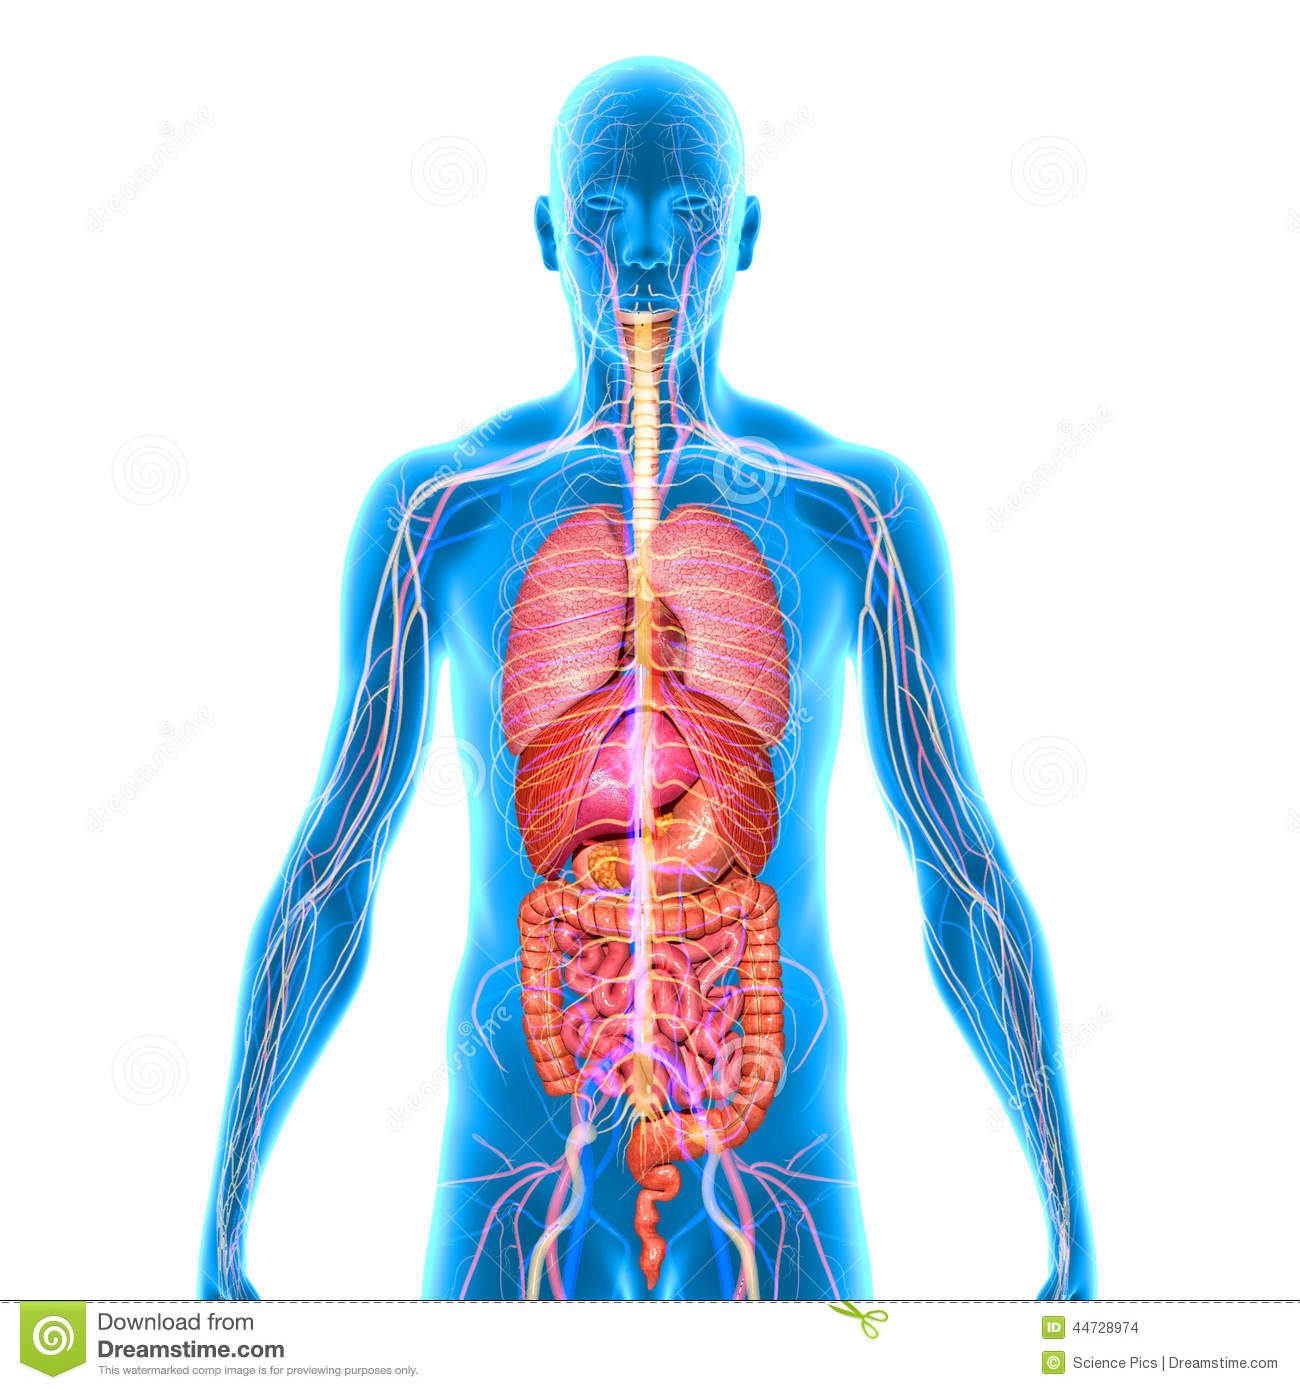 Human Anatomy Stock Illustration Illustration Of Anatomy 44728974